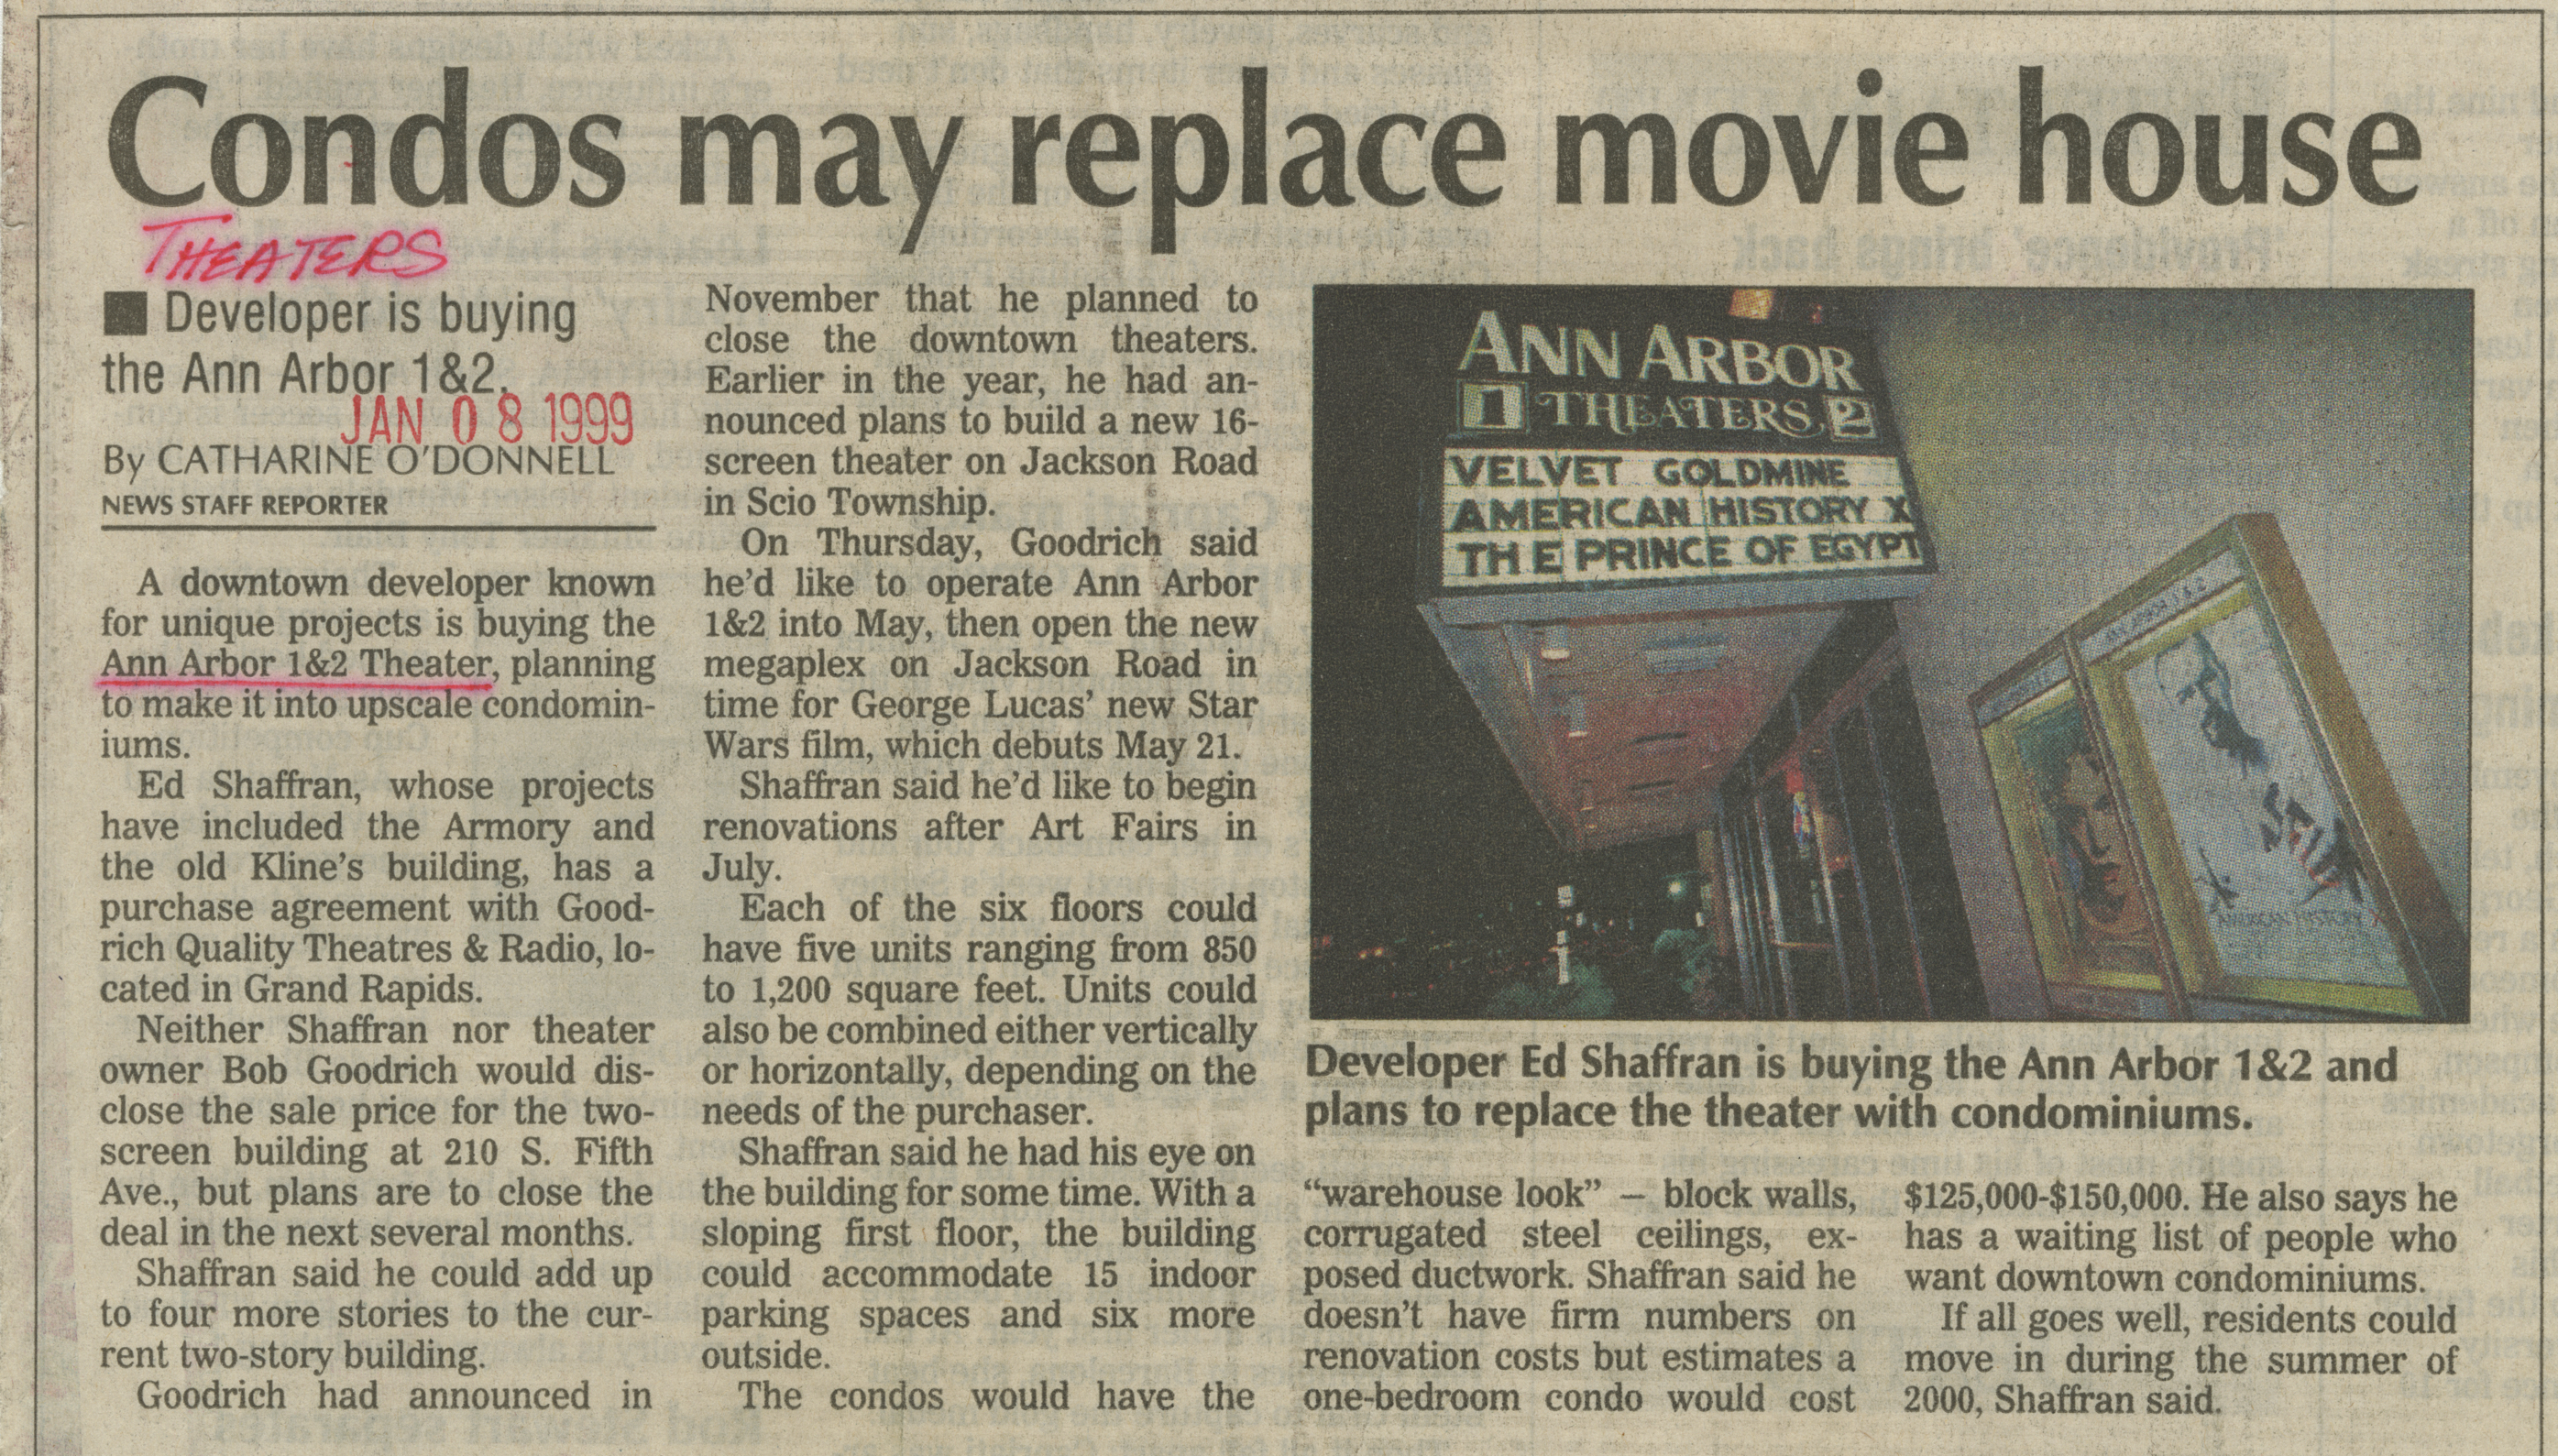 Condos may replace movie house image